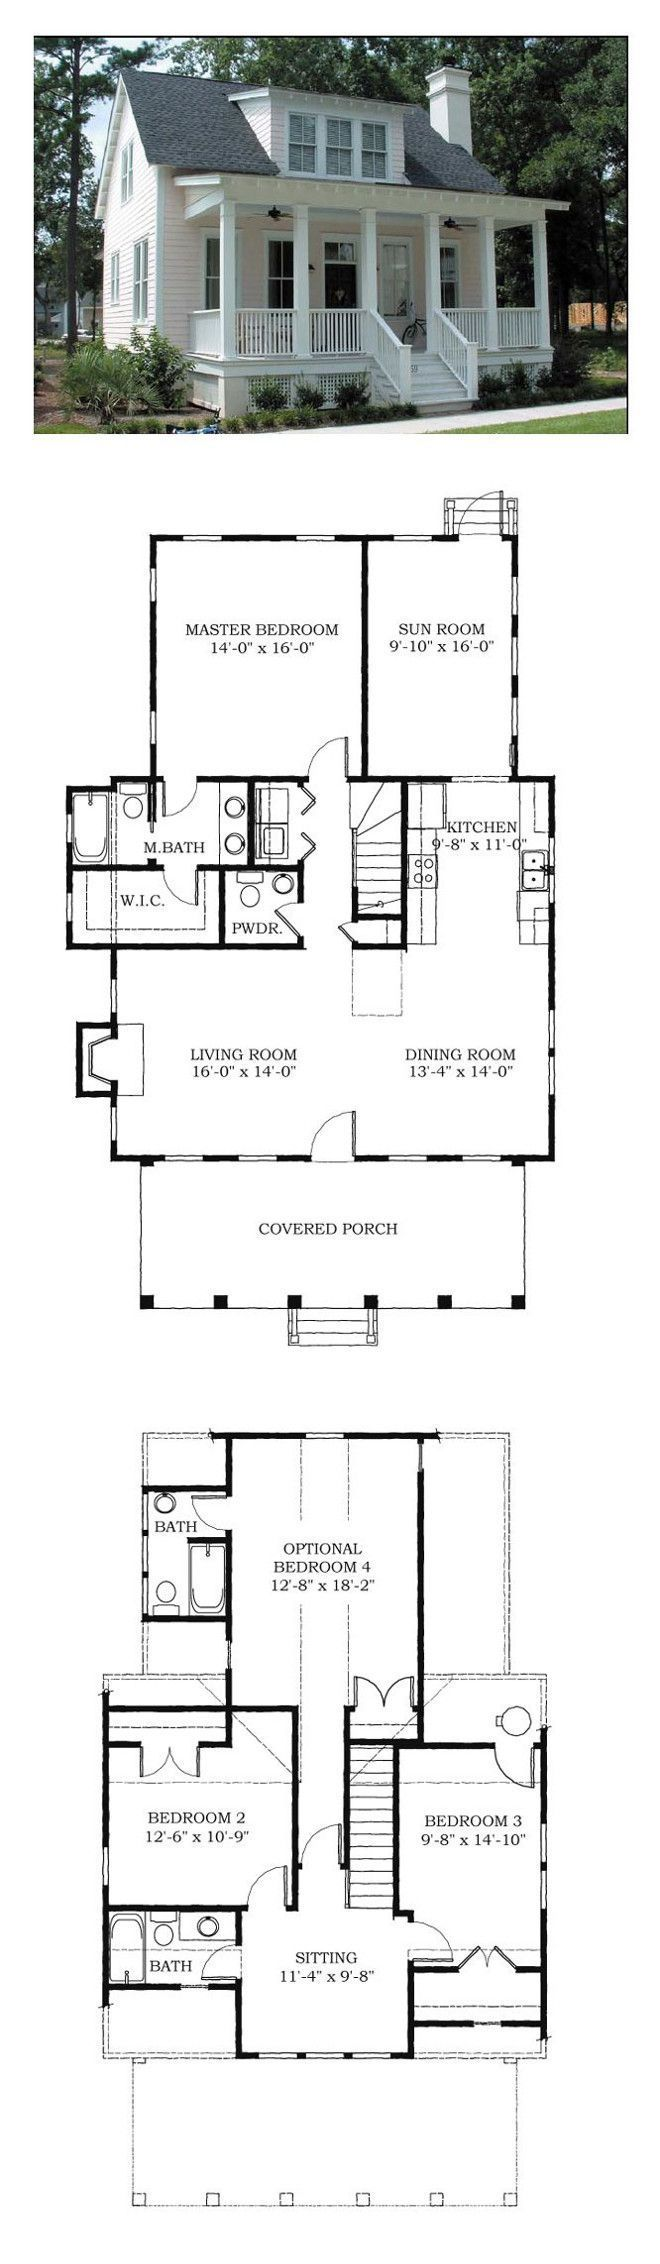 Admirable 17 Best Ideas About Tiny House Plans On Pinterest Small House Largest Home Design Picture Inspirations Pitcheantrous